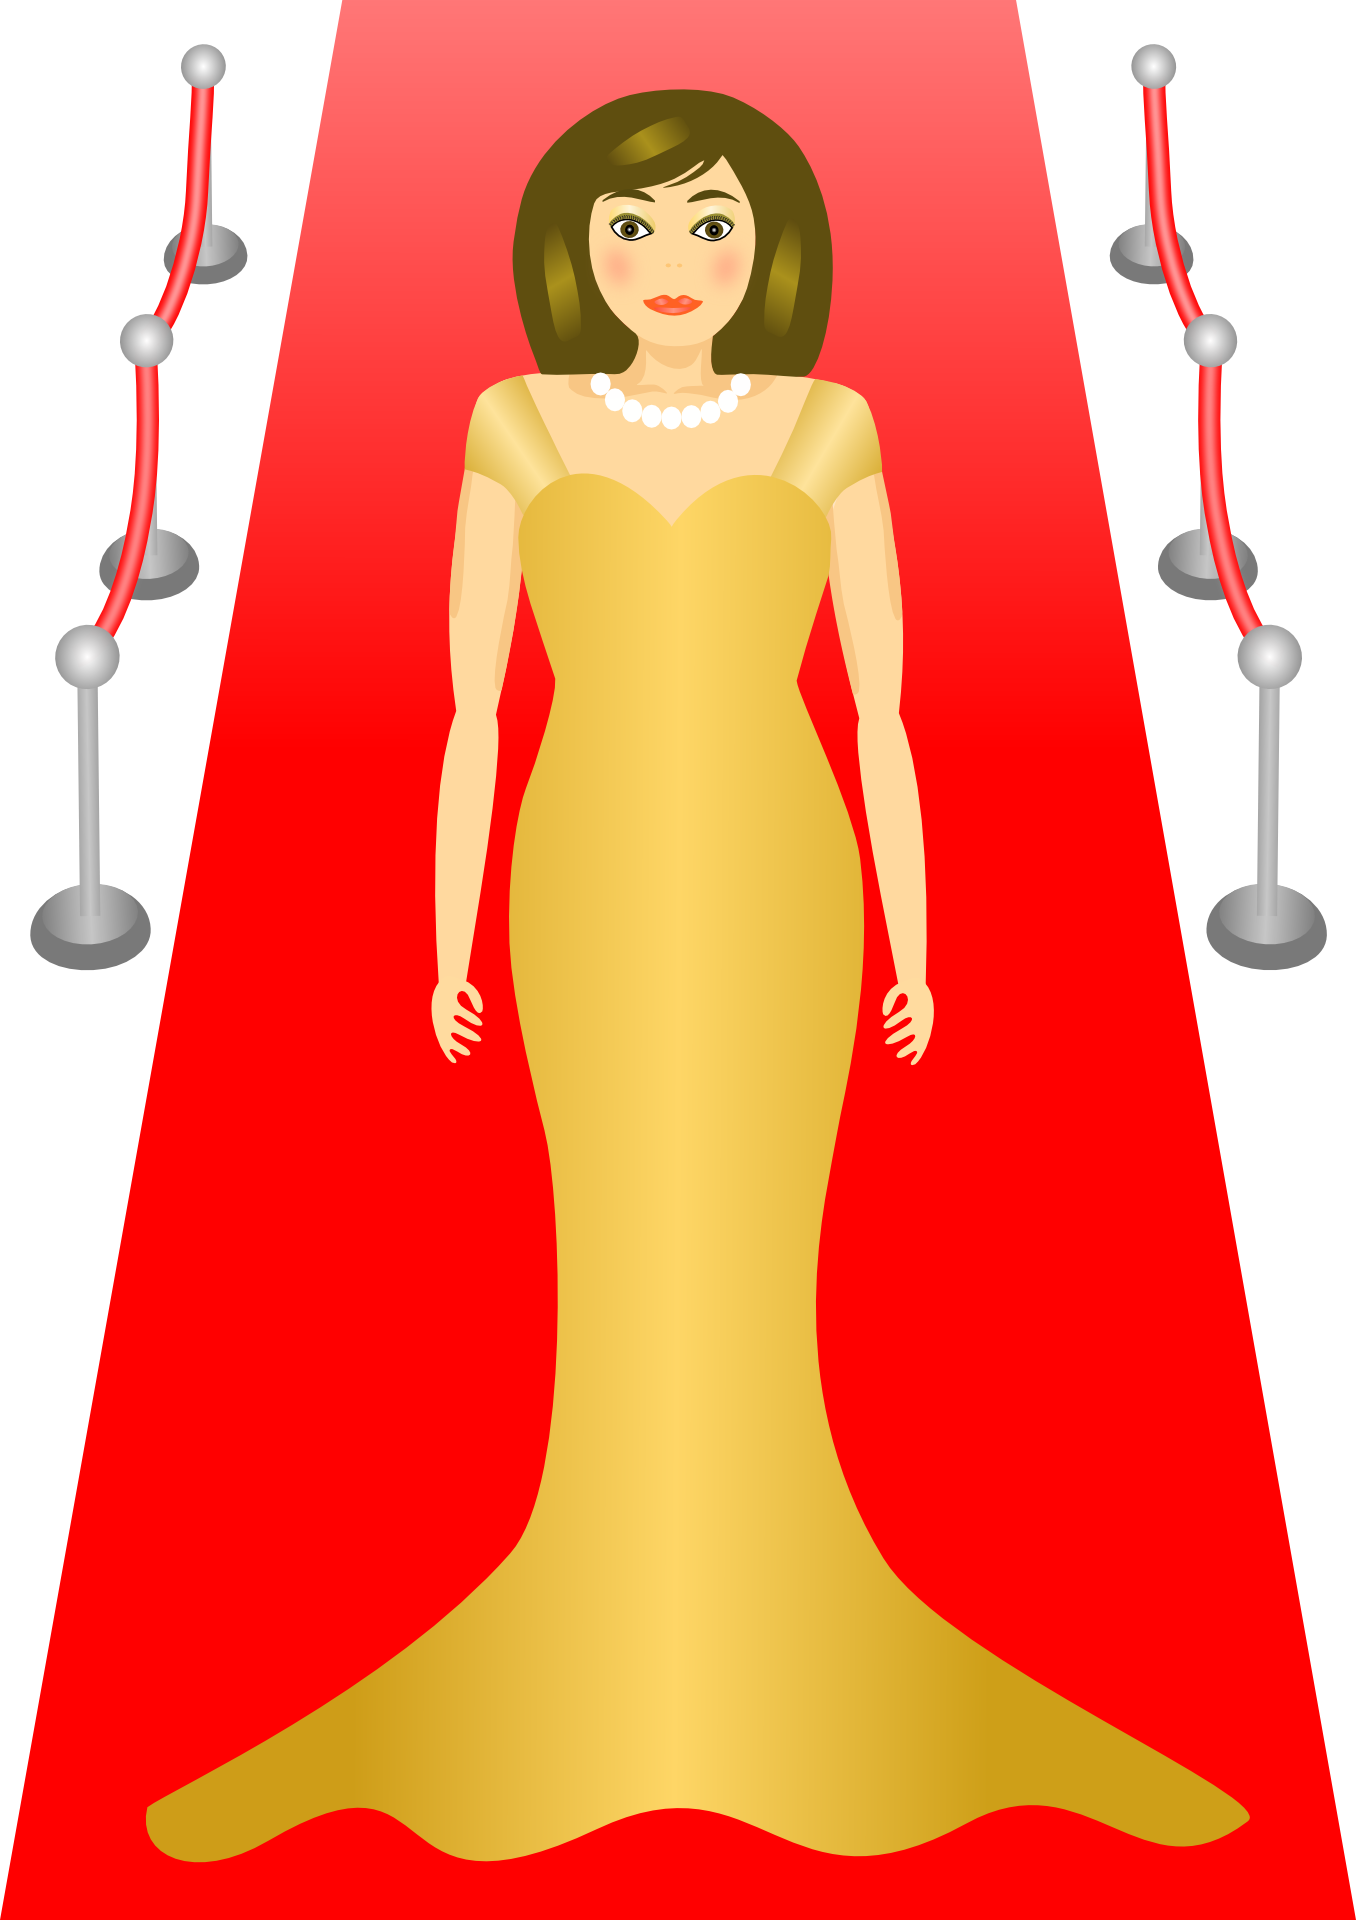 Painted actress on the red carpet free image.